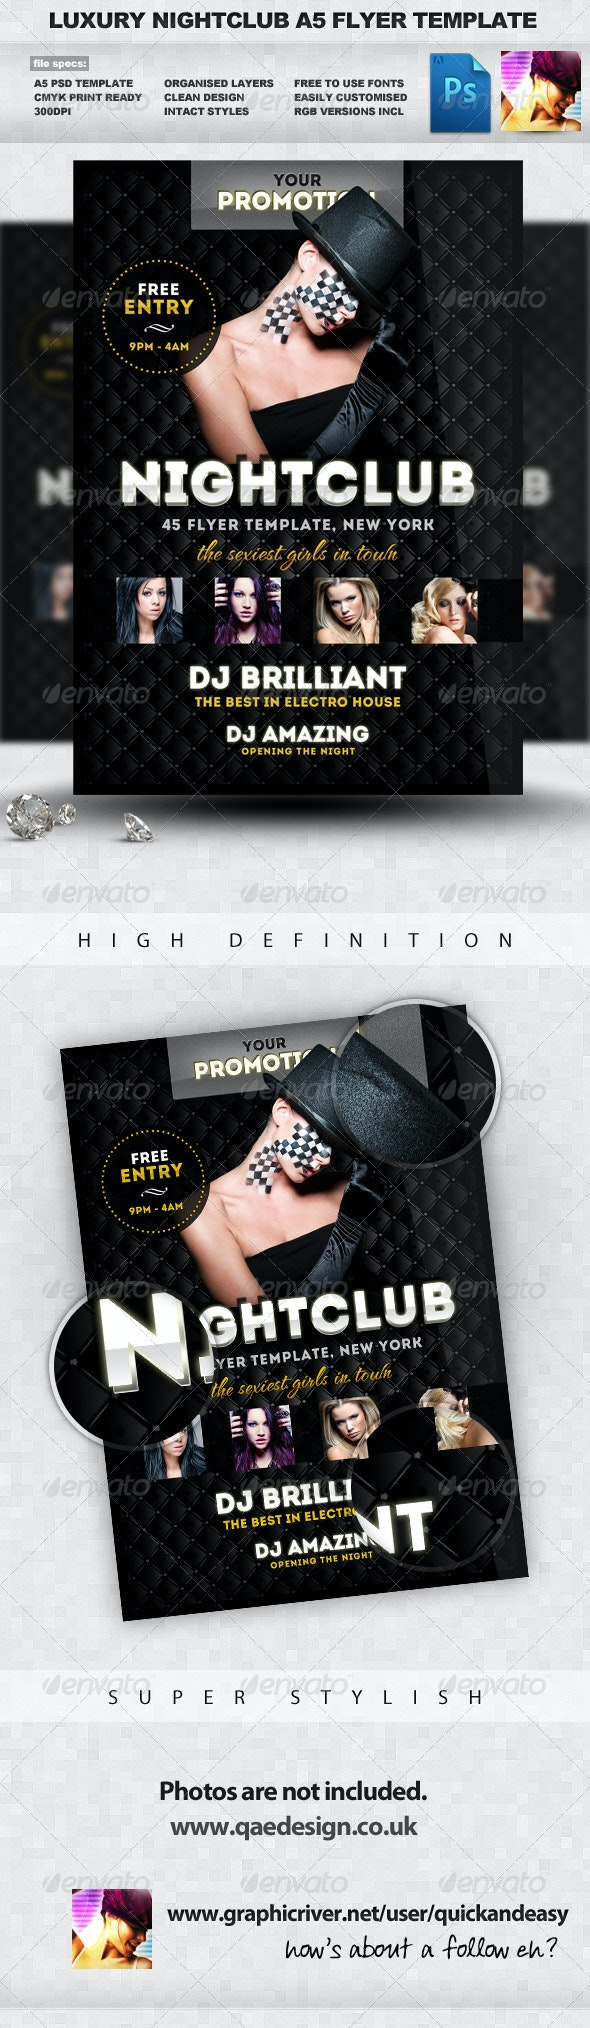 Luxury Nightclub Flyer Template - Clubs & Parties Events